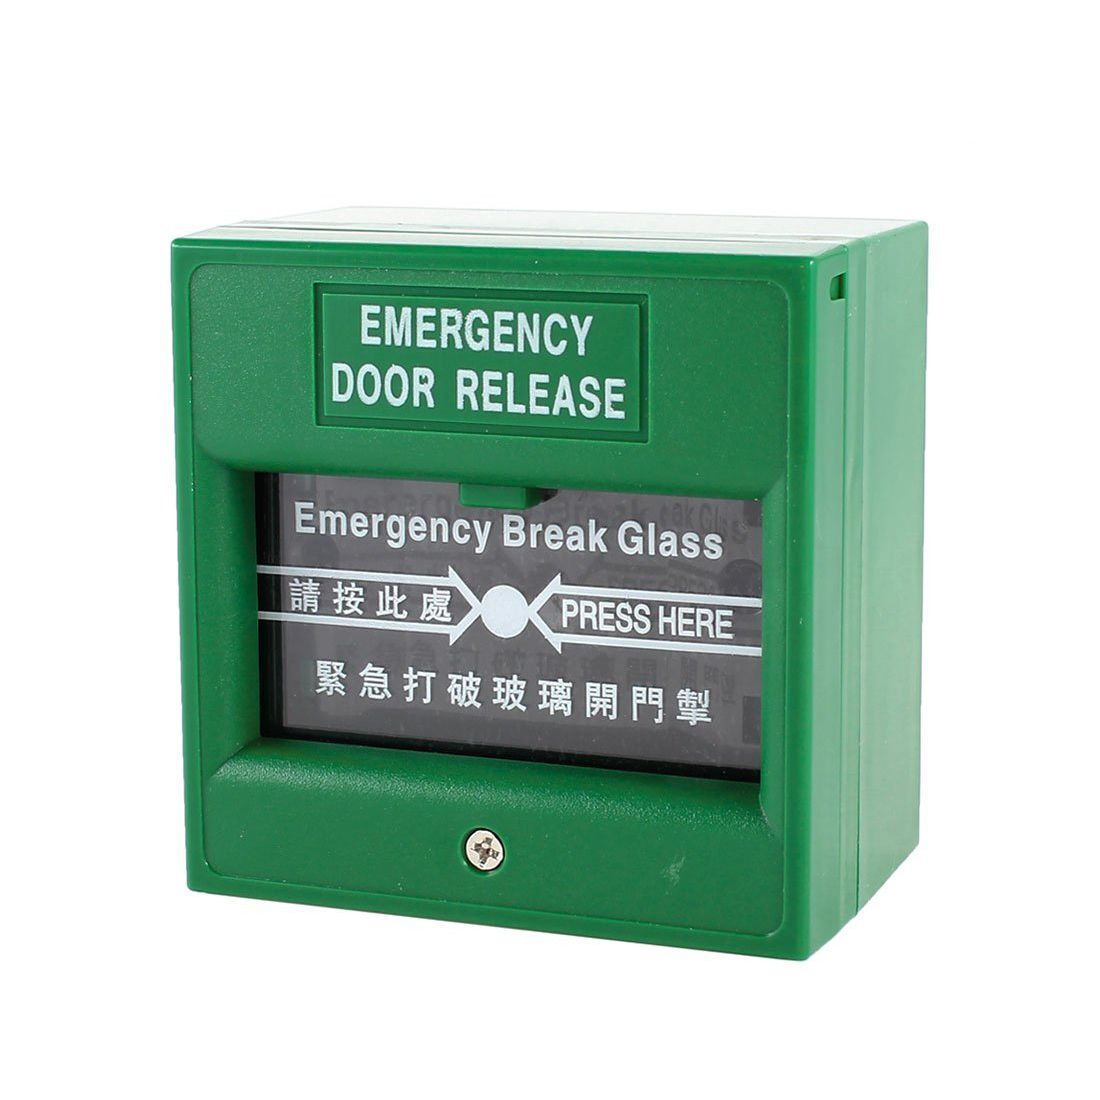 Green Security Alarm Fire Break glass Button Emergency Door Release free shipping plastic break glass emergency exit escape life saving switch button fire alarm home safely security red